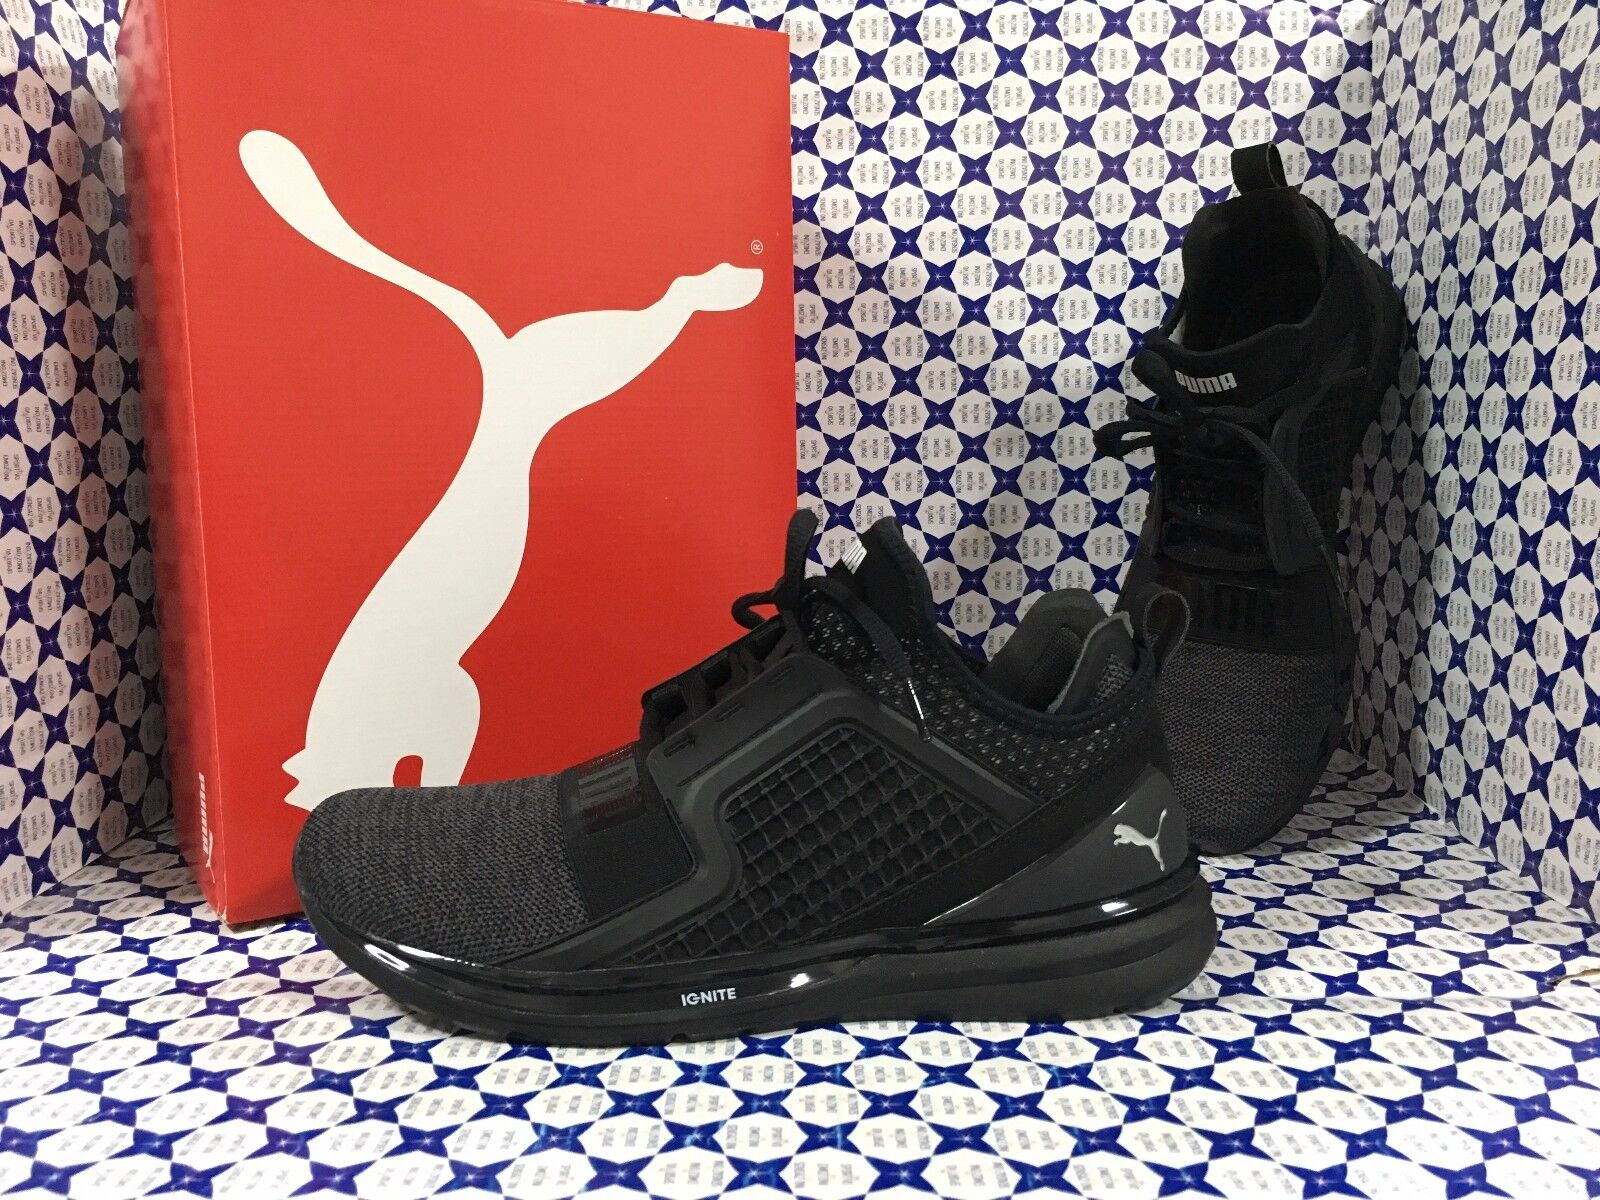 shoes PUMA Ignite men SCONTATE   Limitness Knit - black - 189987